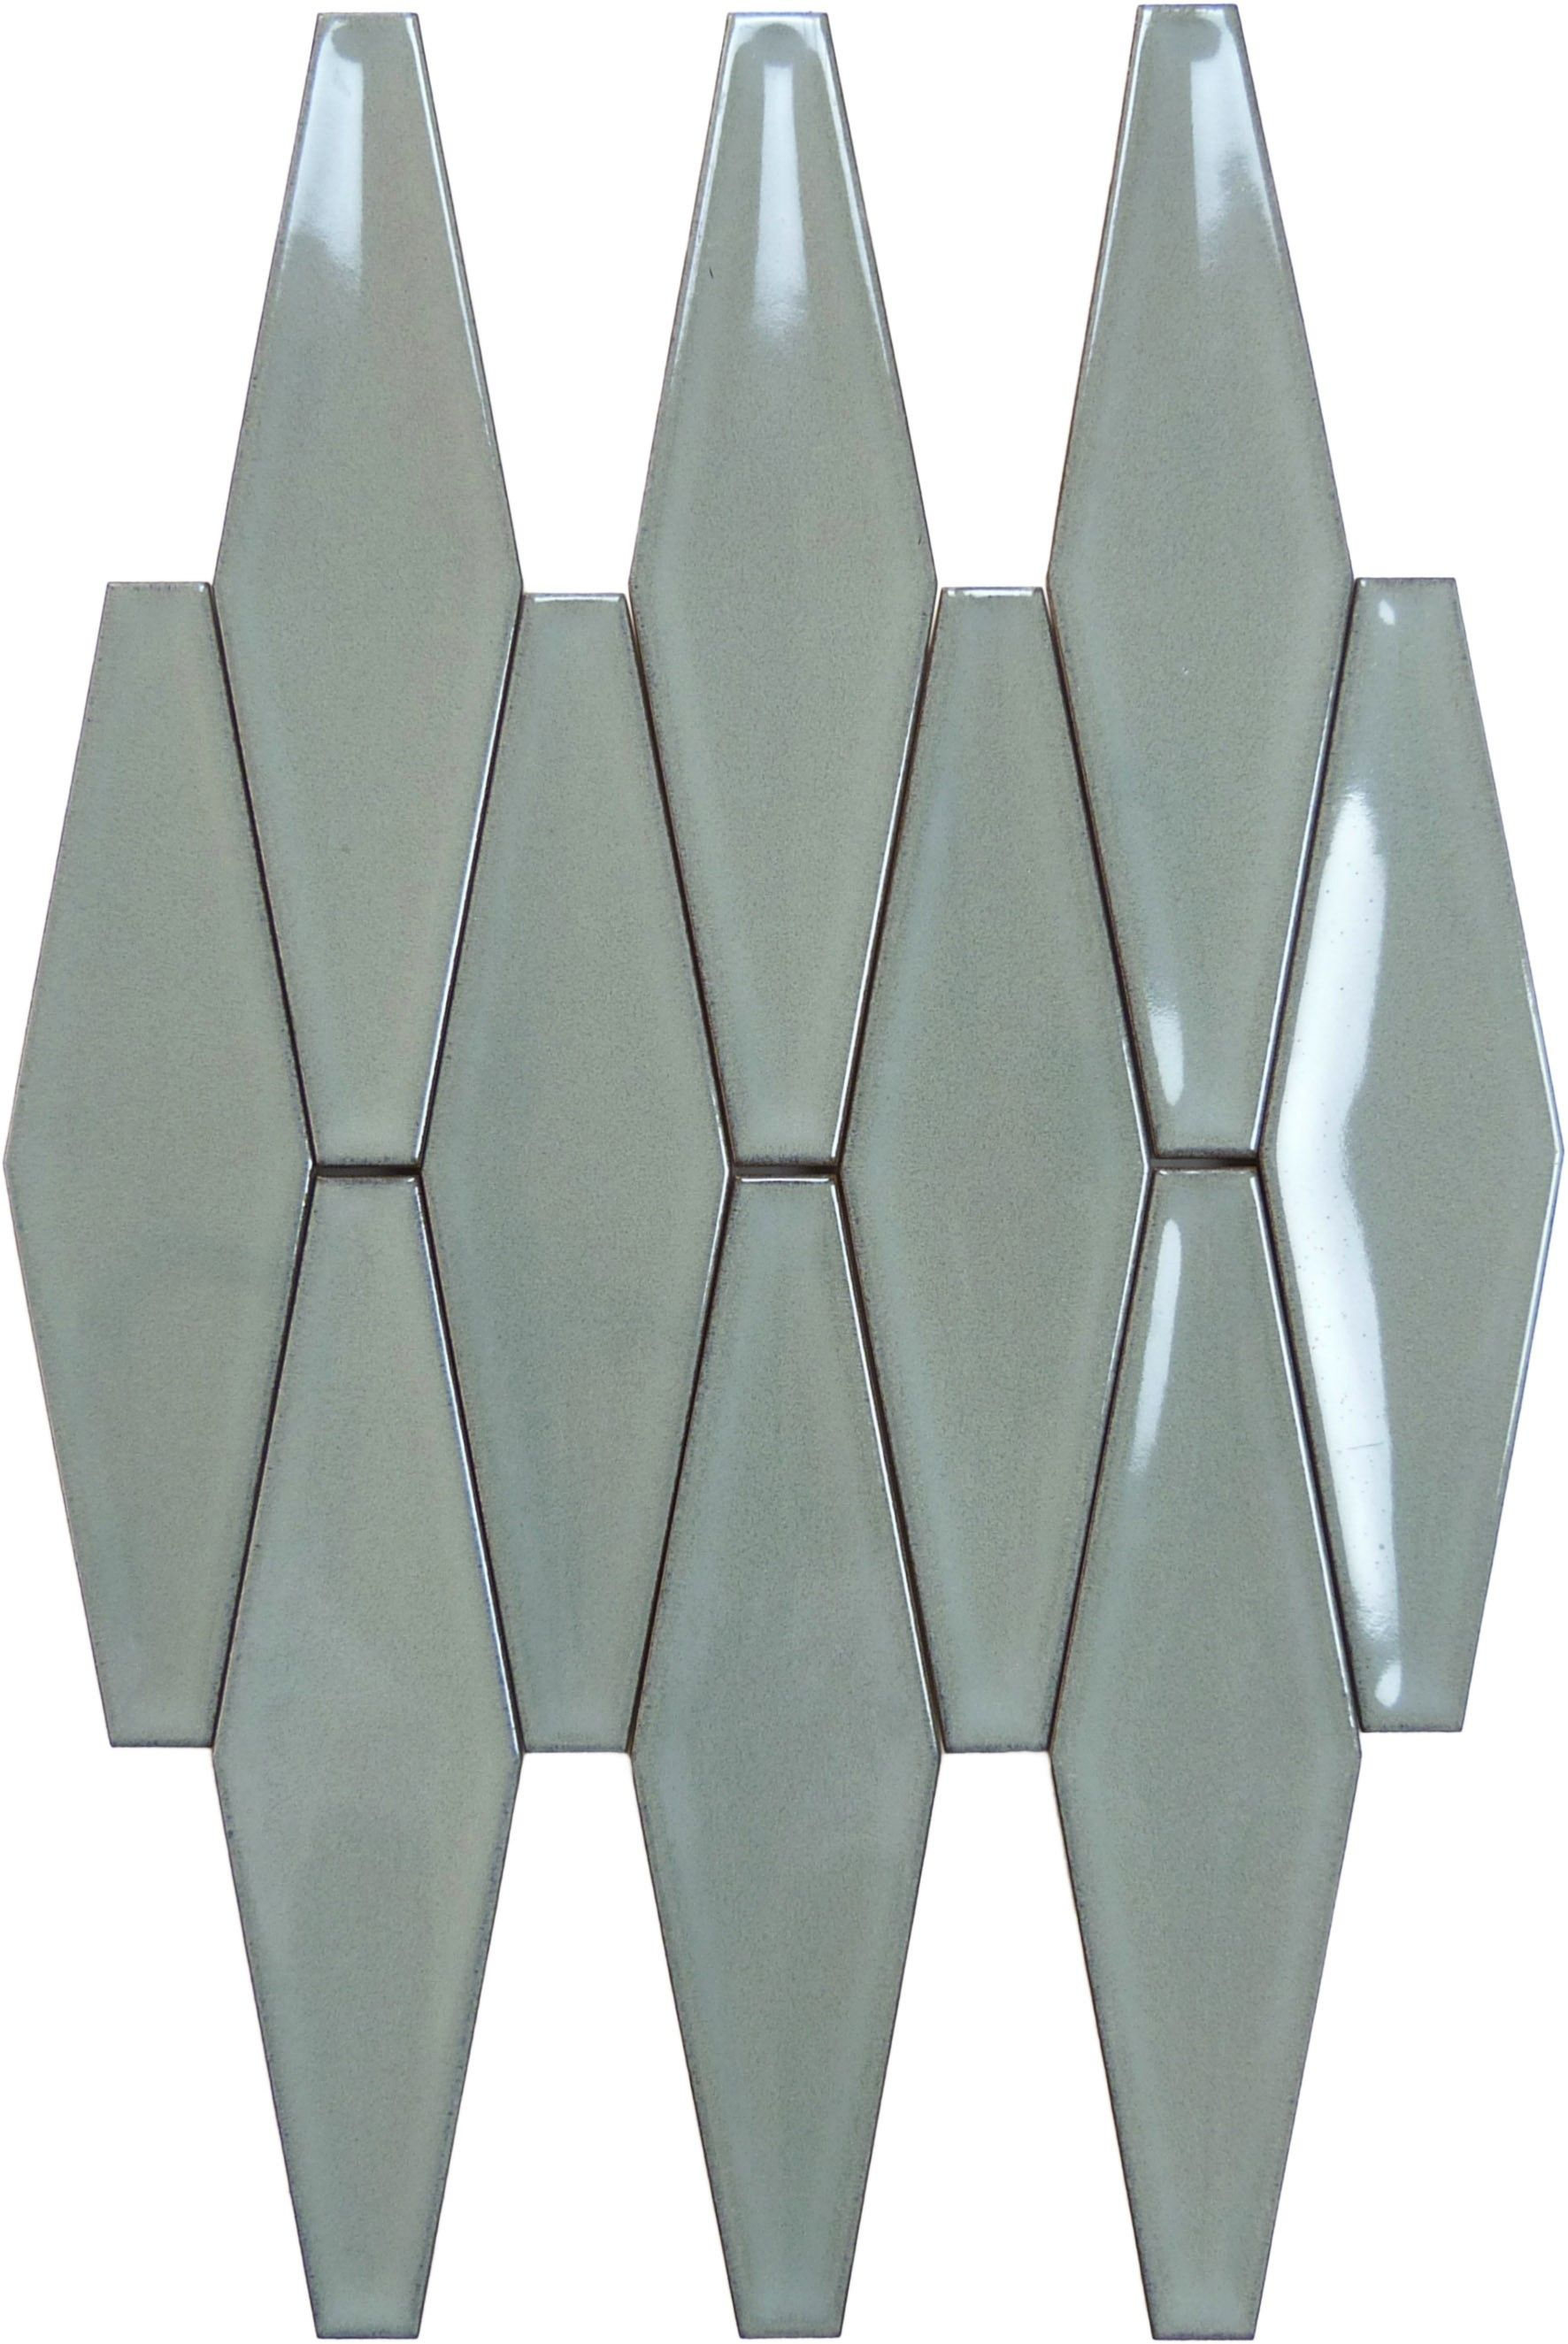 Tile Size 2 1 2 X 9 Tiles Per Sq Foot 10 Tile Thickness 1 4 Nominal Sold By The Square Foot Brick Patterns Midcentury Tile Tile Layout